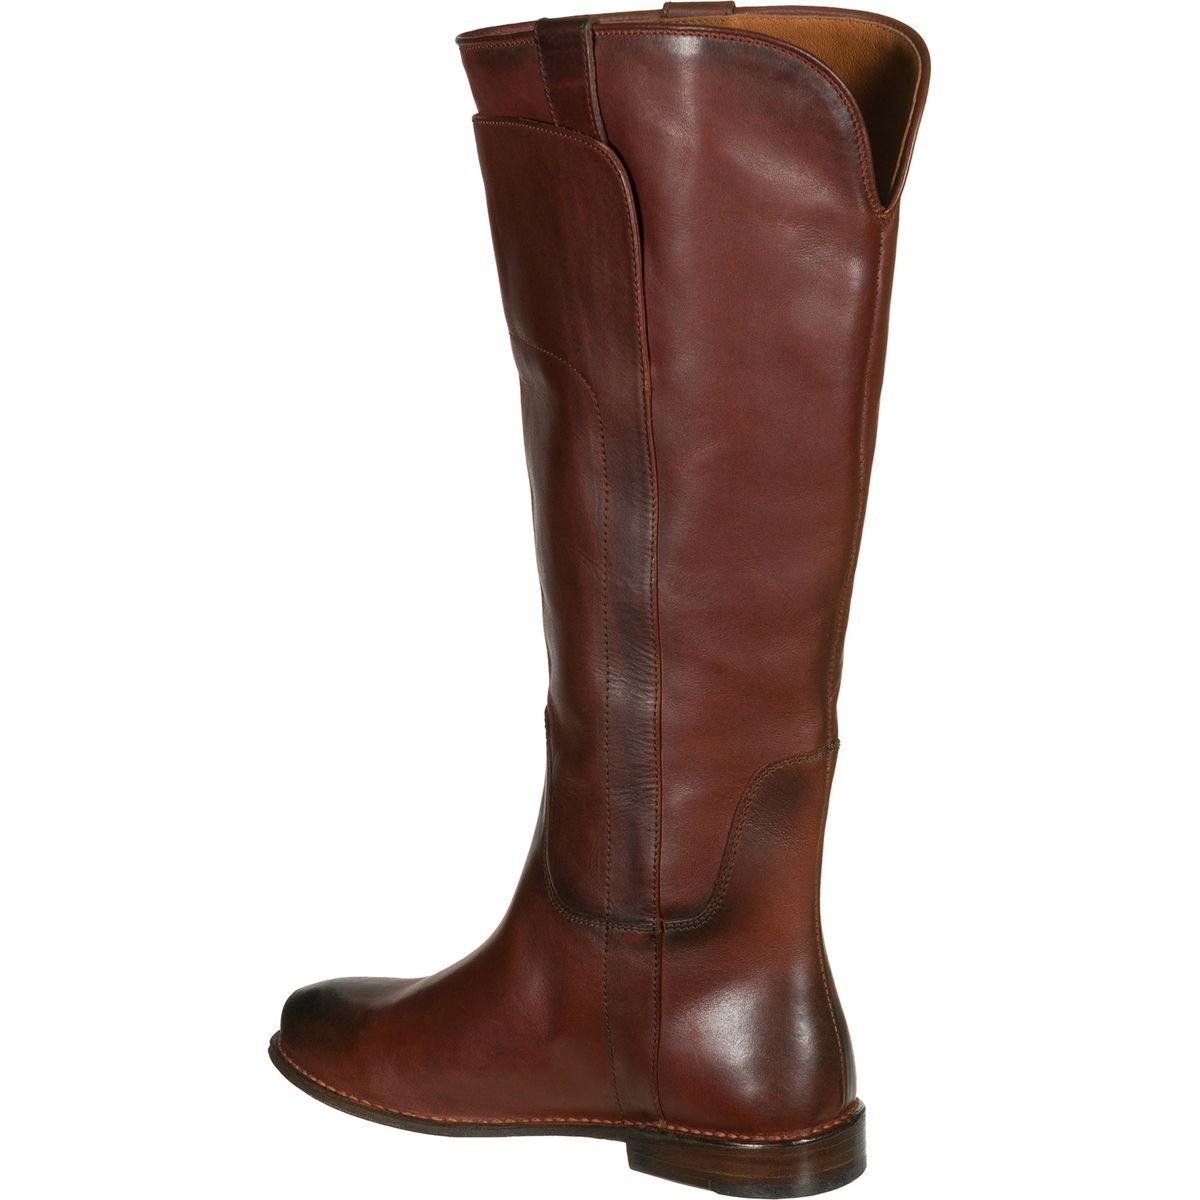 FRYE Women's Paige Tall Riding Boot B06VSW2BBD 5.5 B(M) US|Red